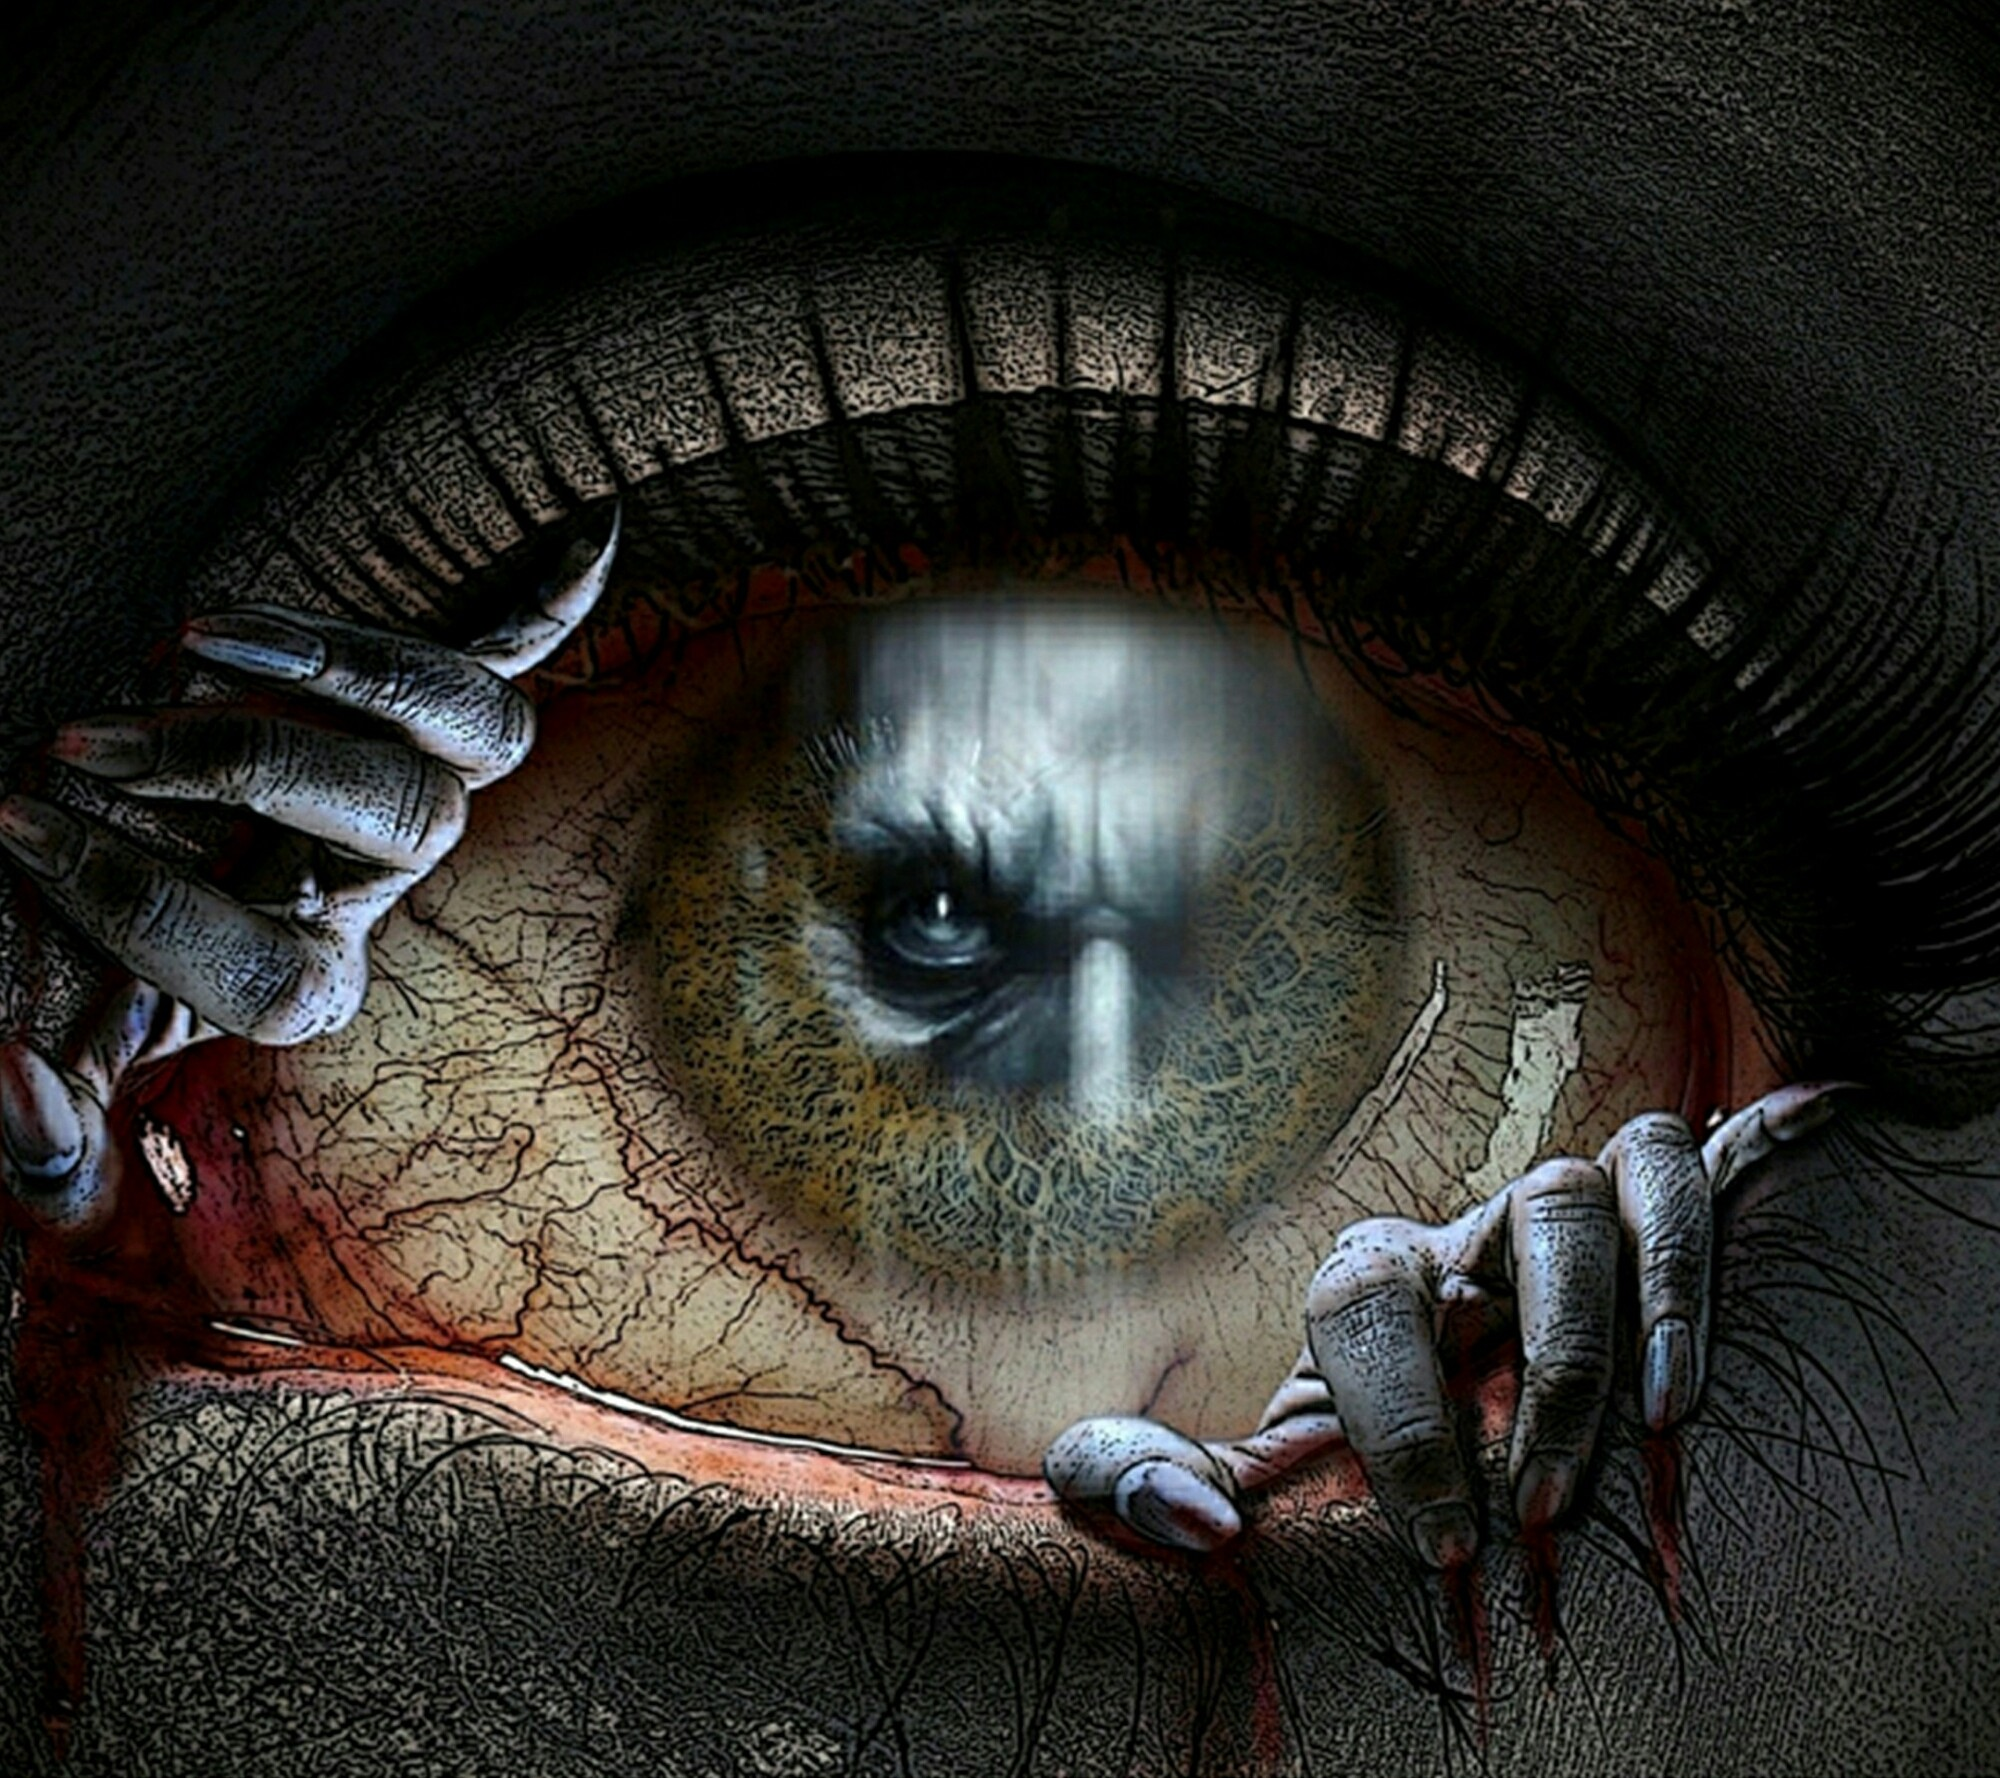 2000x1778 evil eye wallpapers high resolution - photo #1. expressing myself |  Inner-most thoughts | Page 2